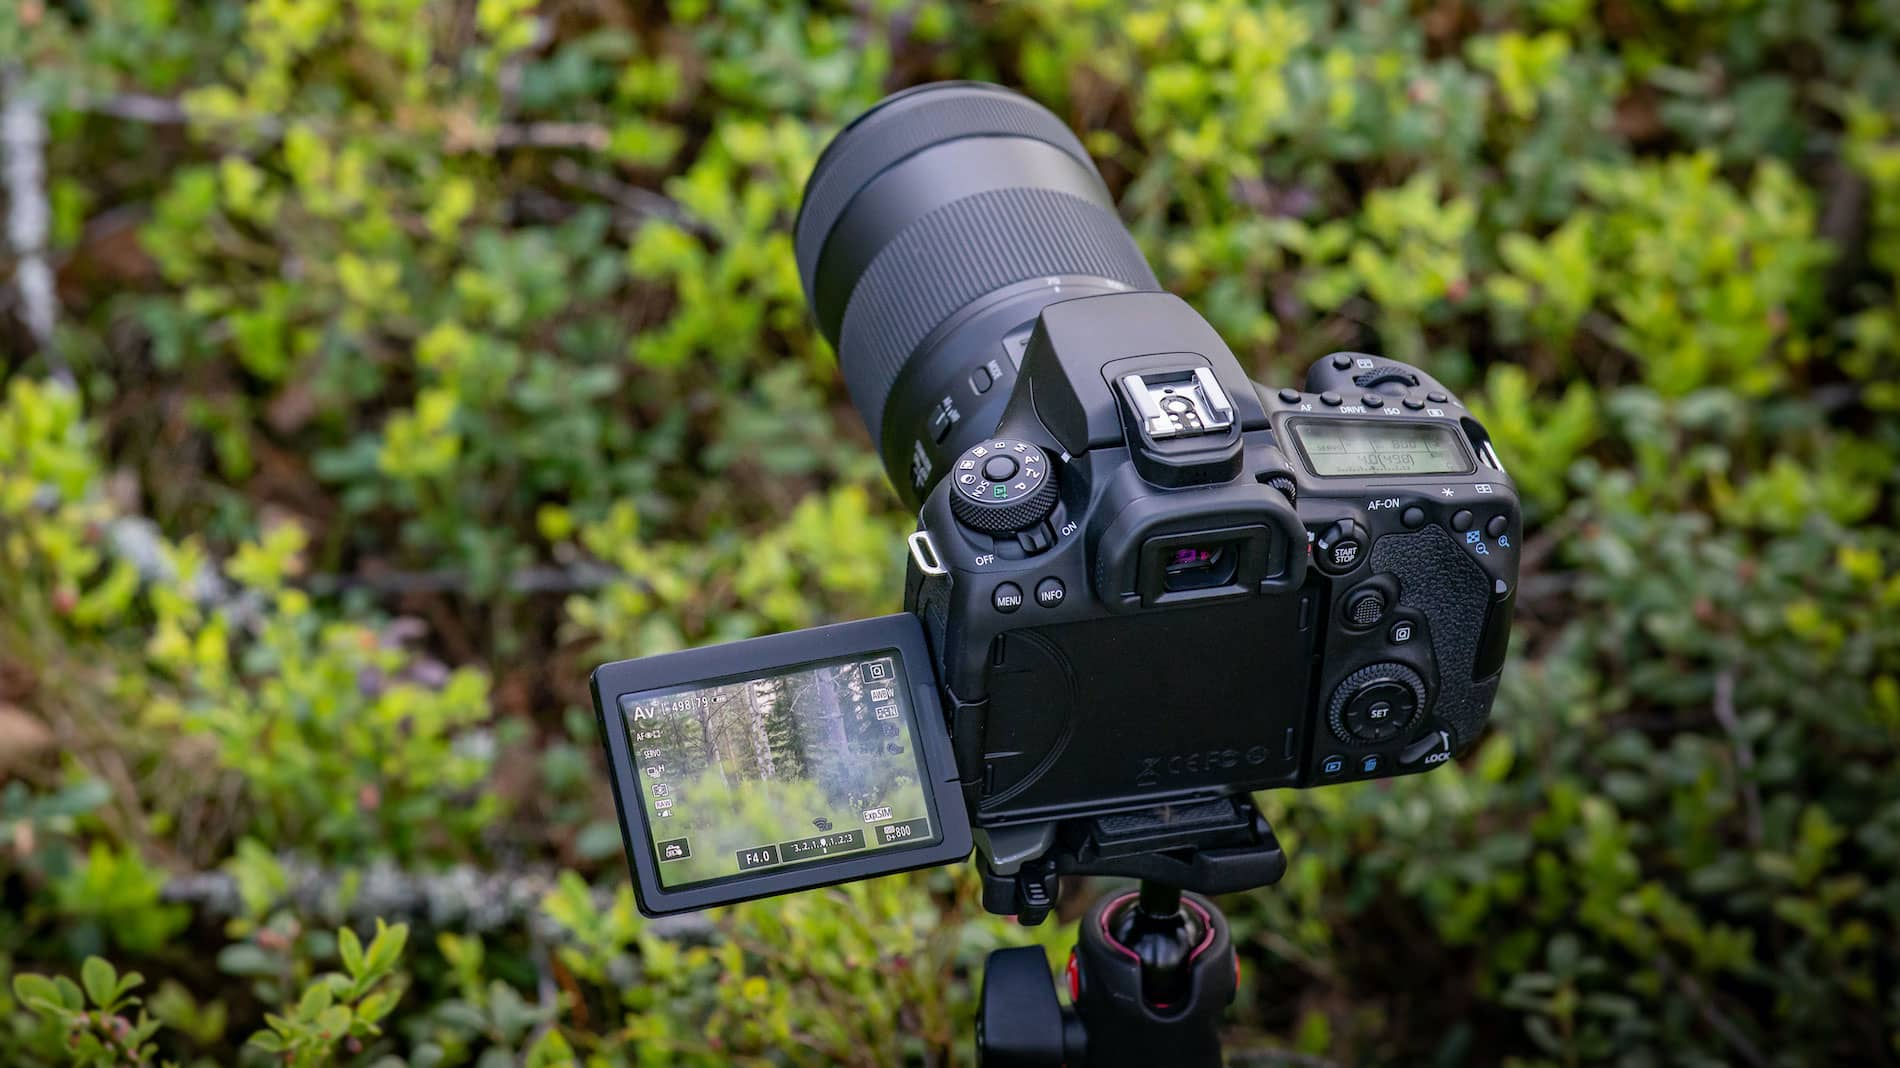 How to Start a Legal Photography Business with No Experience - Digital Photo Business